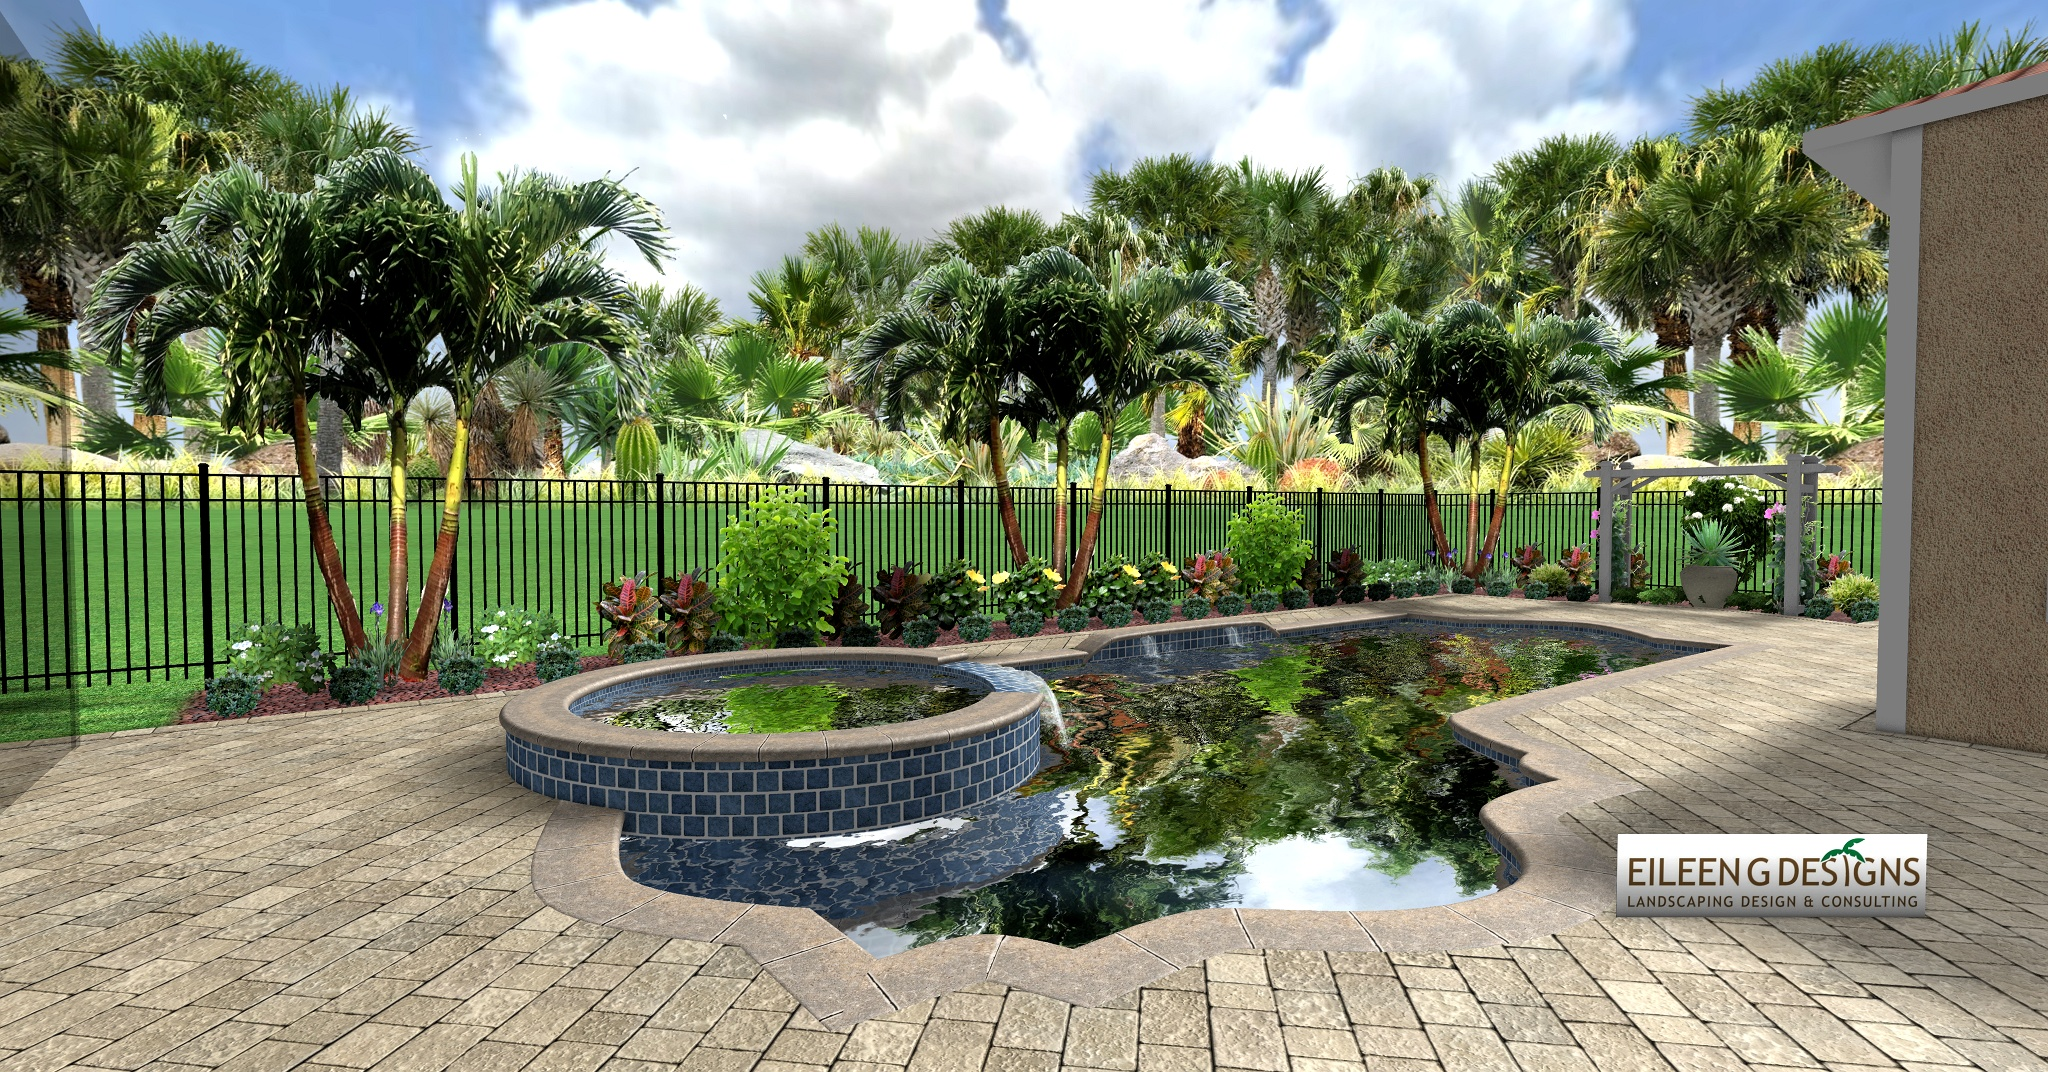 Tropical Landscaping And Paver Deck For Small Pool Area